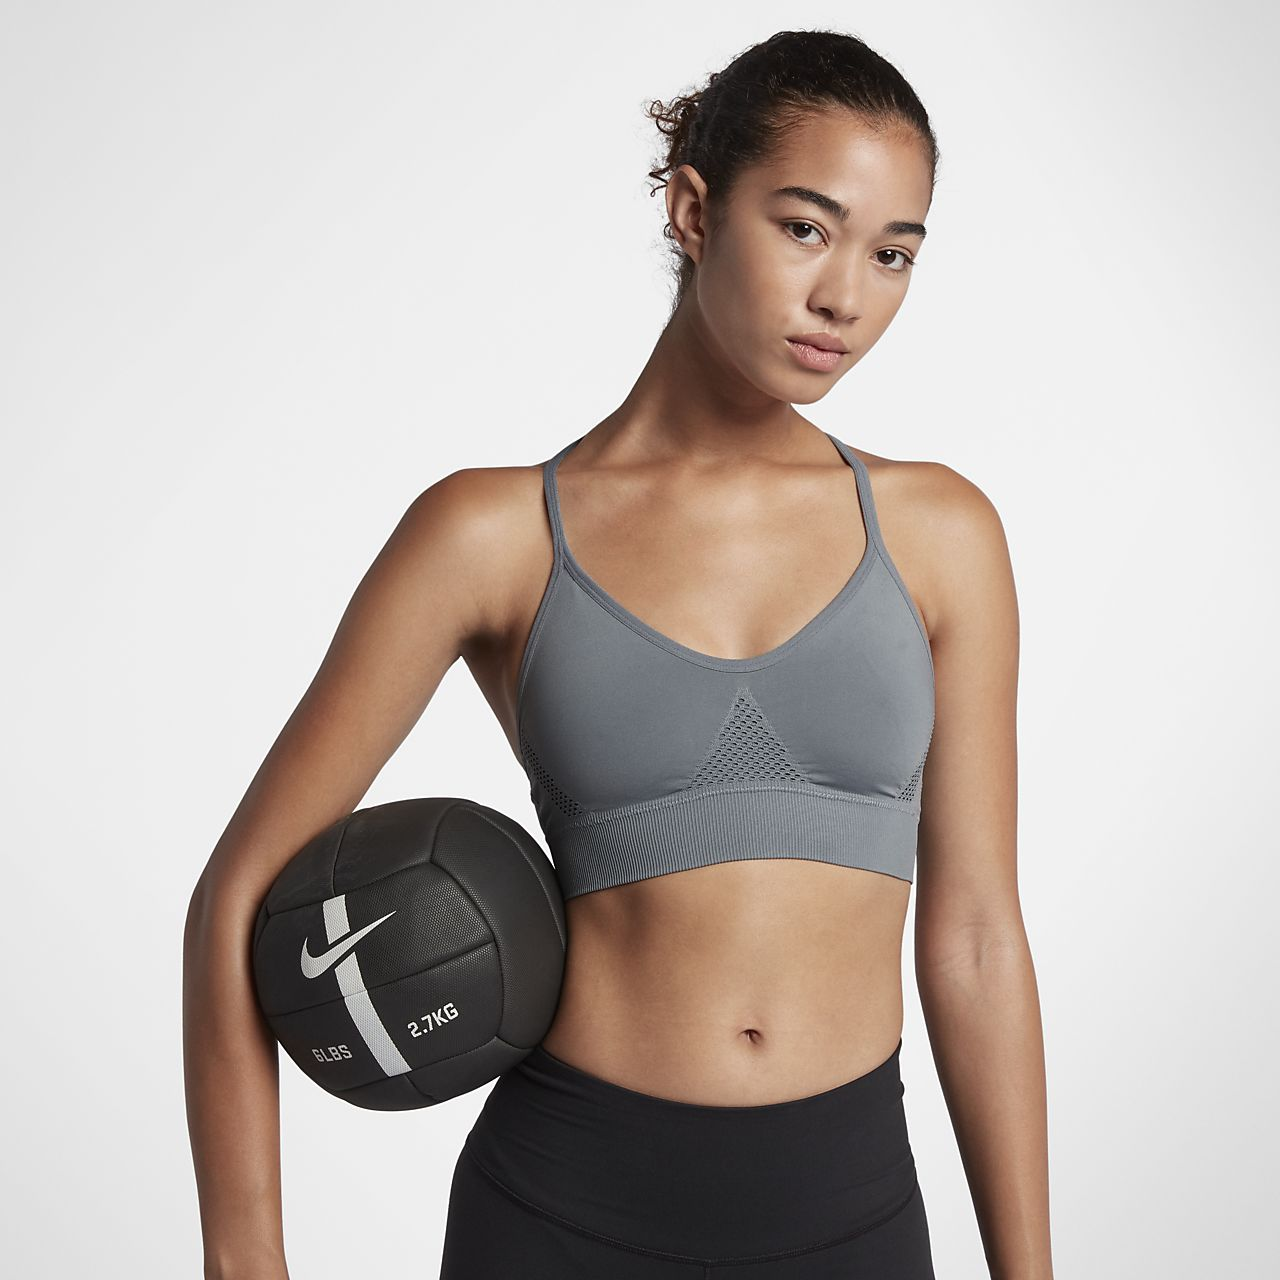 0179030c29f02 Nike Seamless Women s Light Support Sports Bra. Nike.com NO